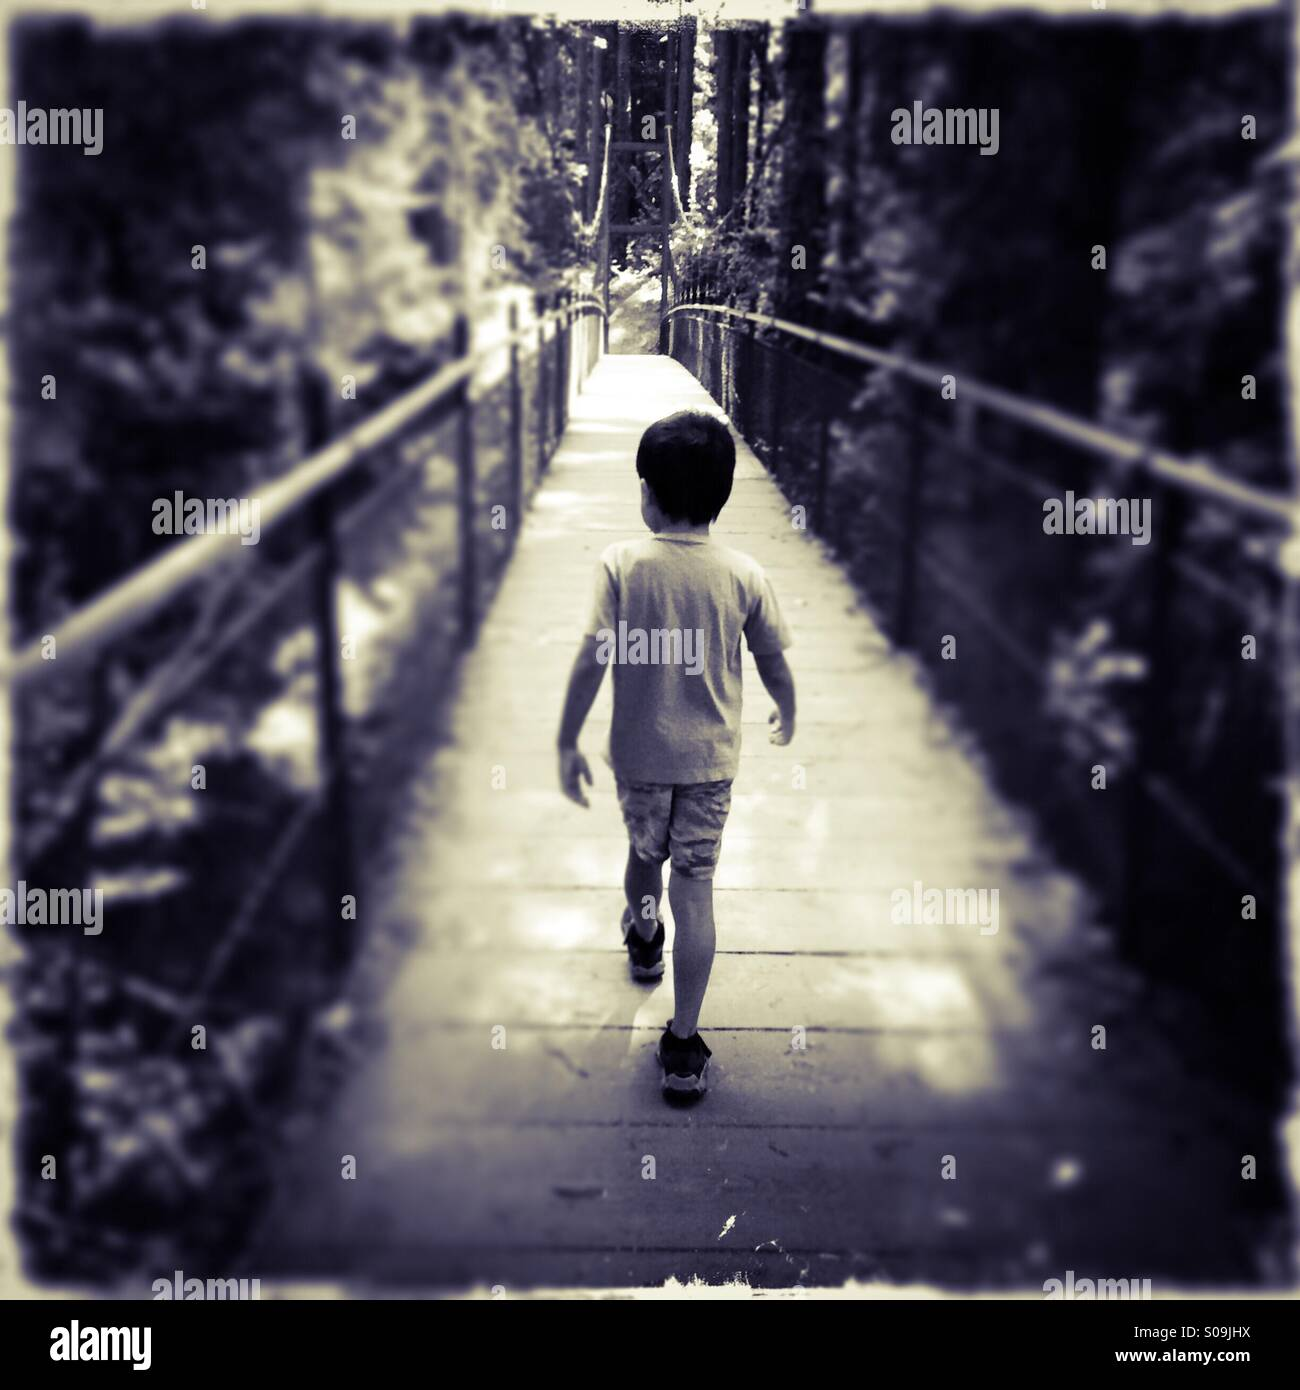 A six year old boy walks across a foot bridge by himself. Stock Photo